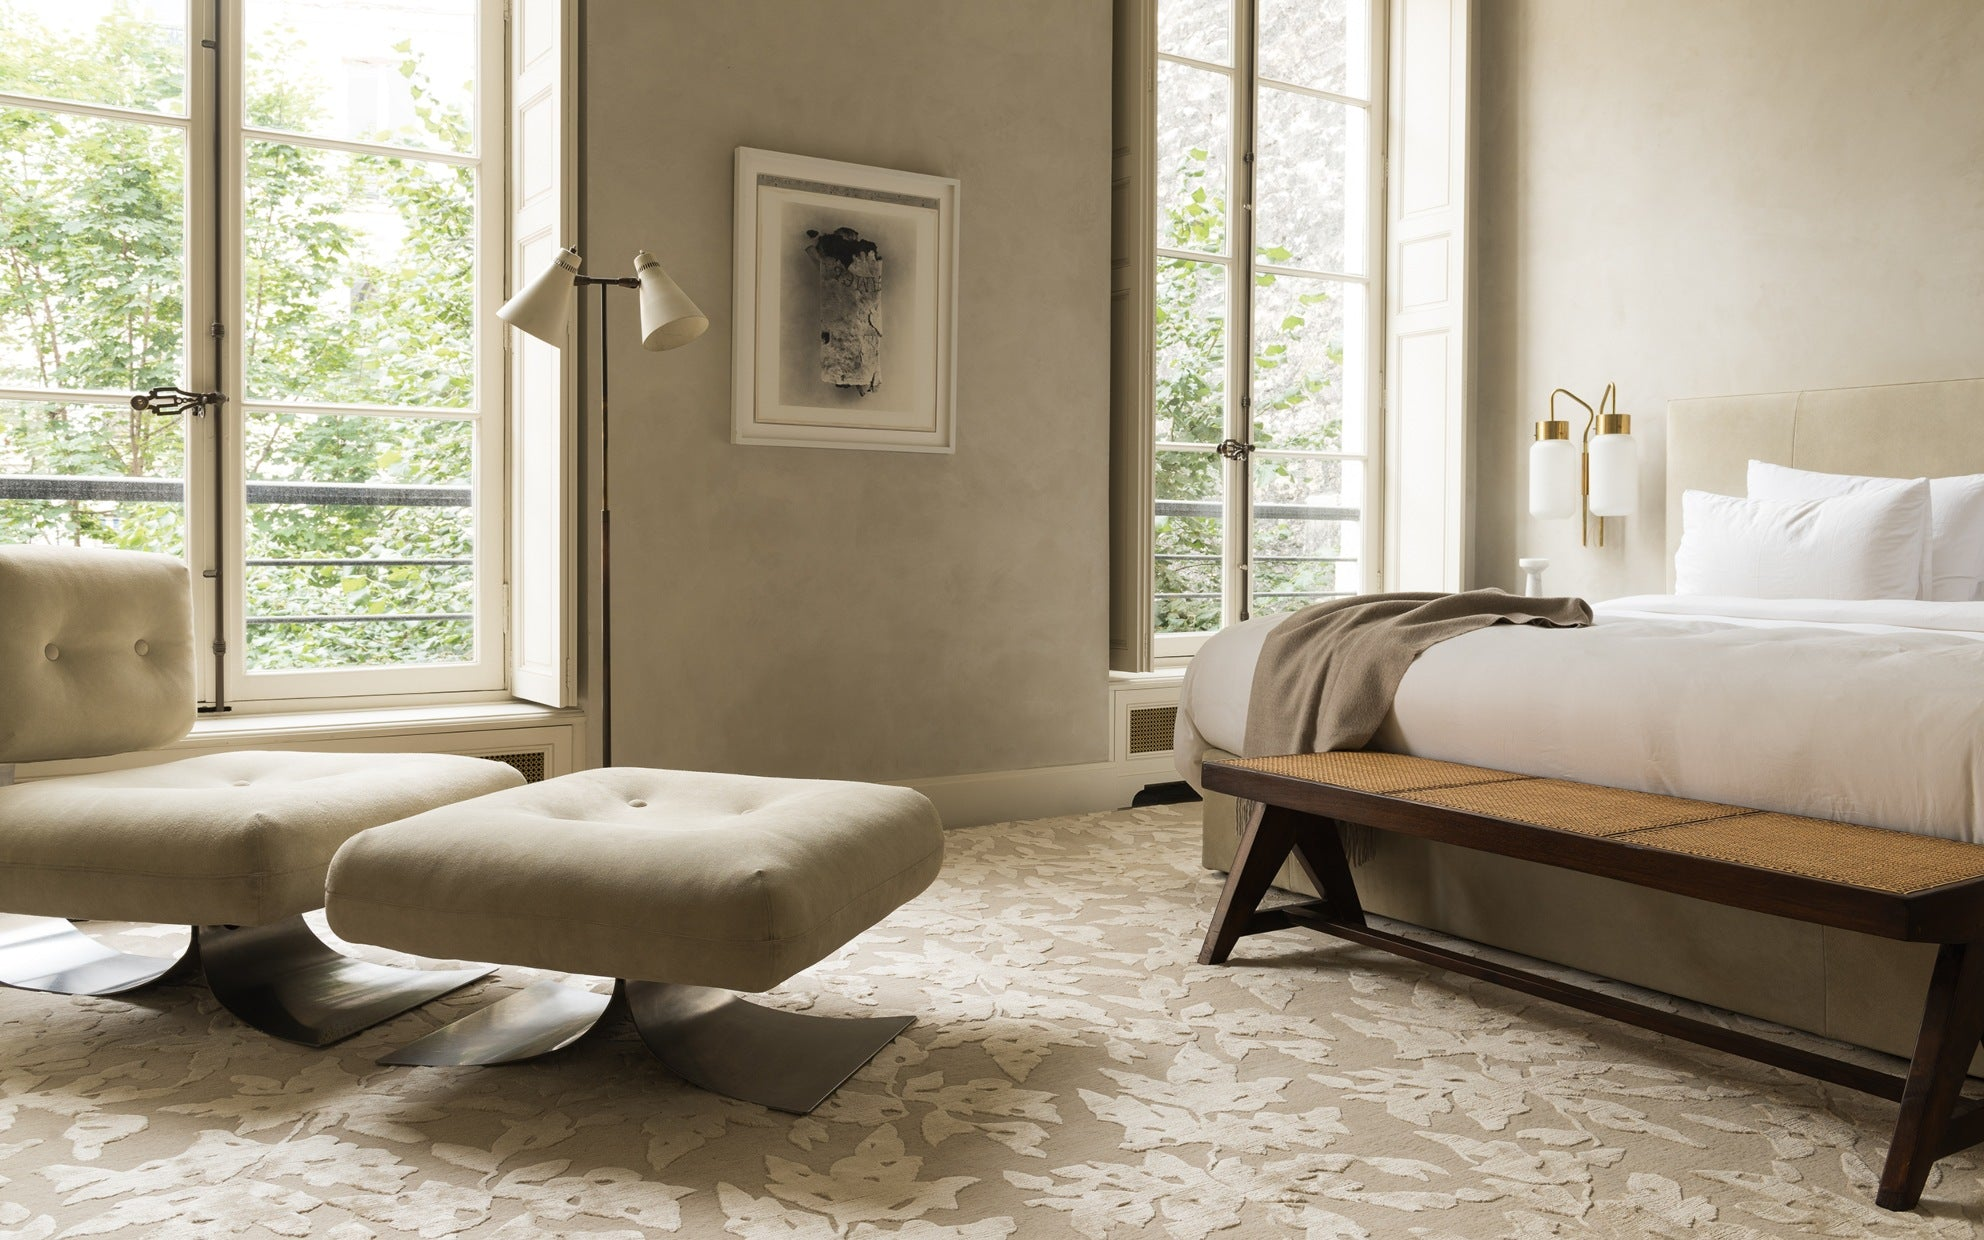 Cream Bedroom Colour Scheme - Neutral Bedroom Colour Ideas - LuxDeco.com